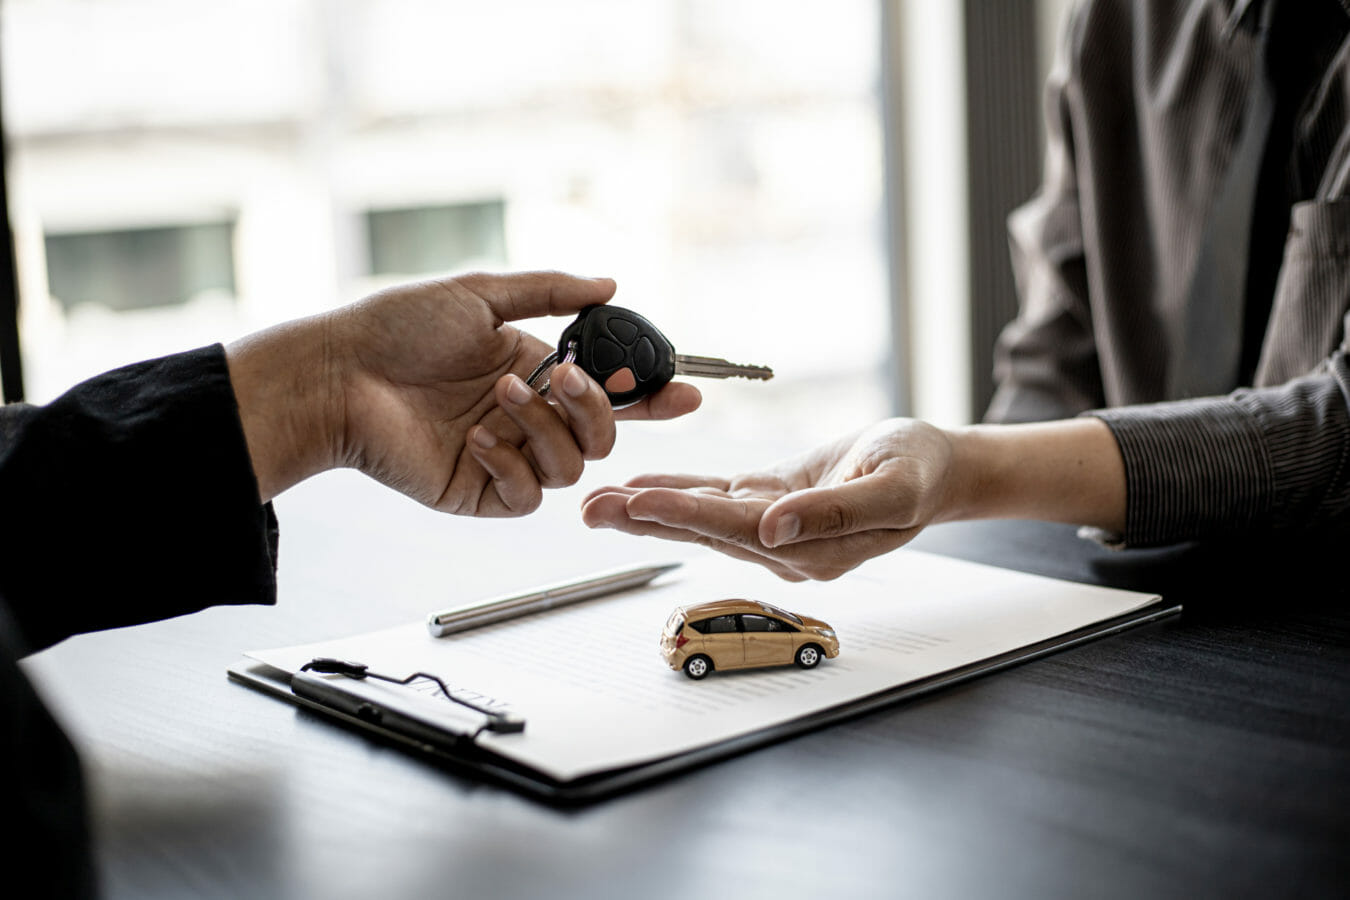 LSA Splurge Smart: Expert's guide on buying a pre-owned luxury car